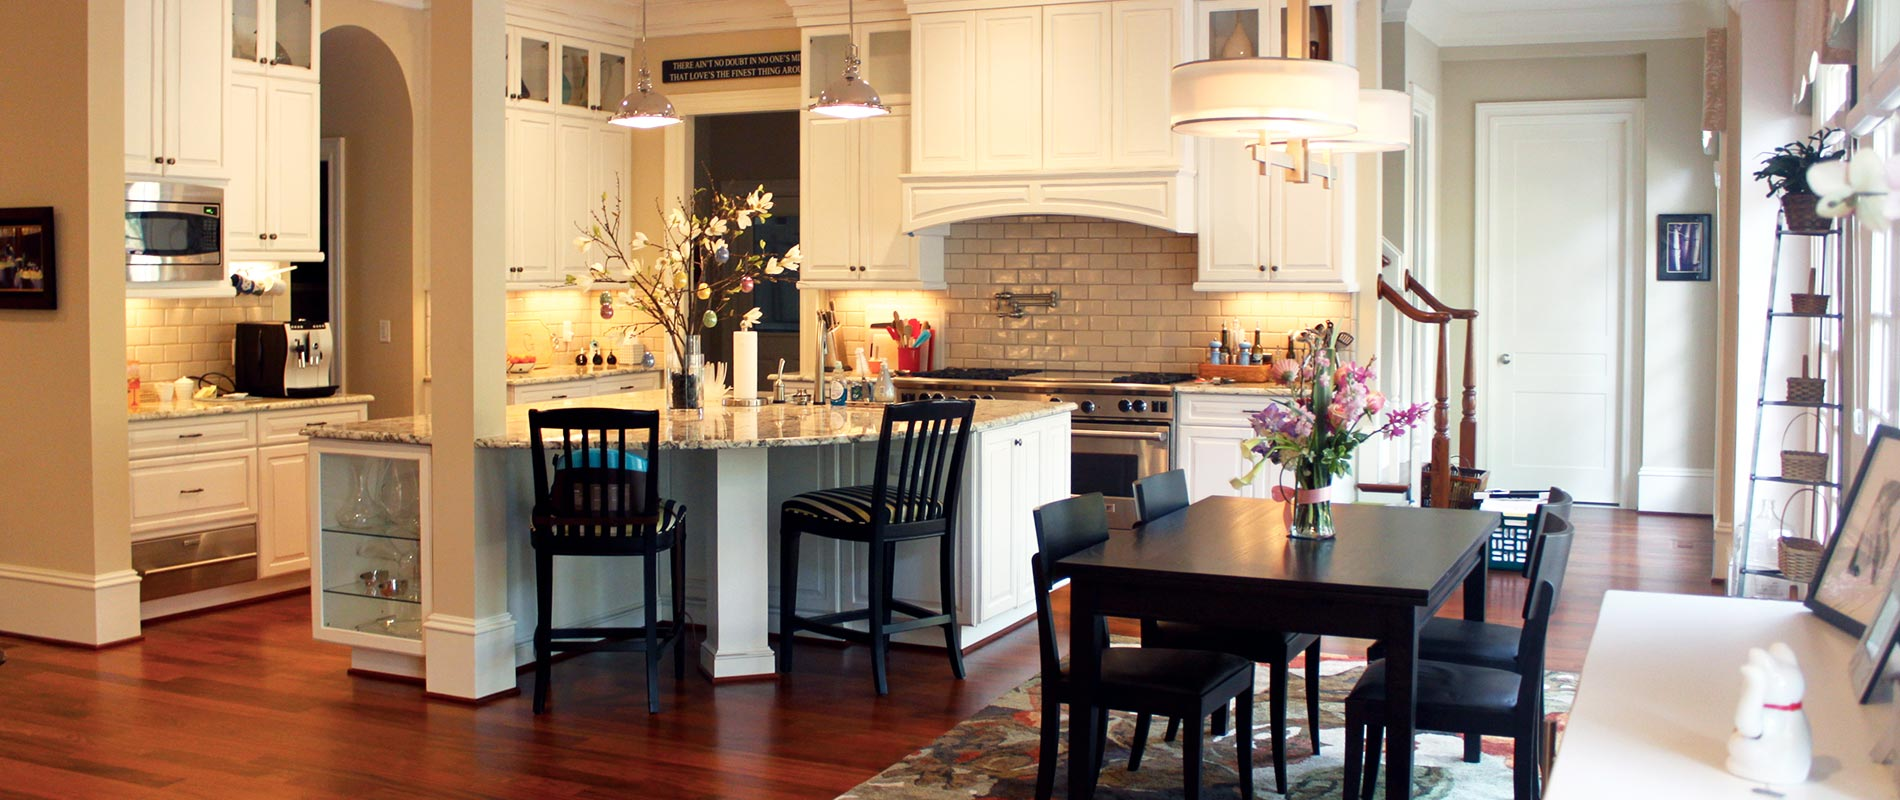 Kitchen Remodel | Complete Construction Company | Raleigh, NC